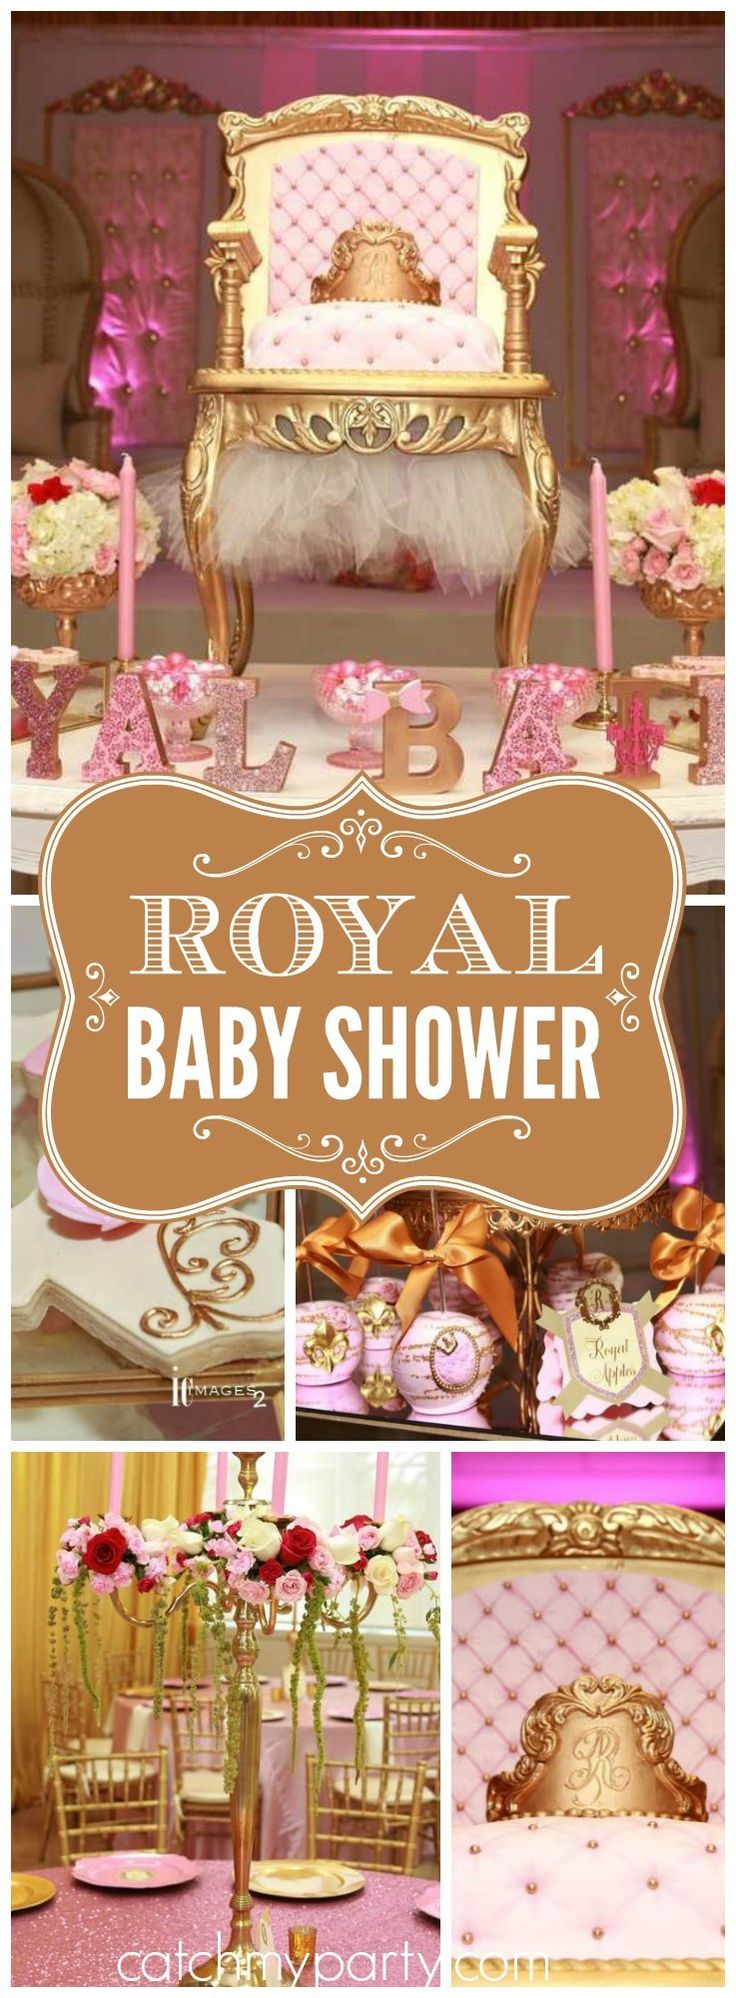 "Royal Baby Shower / Baby Shower ""Princess Royal Bailey"